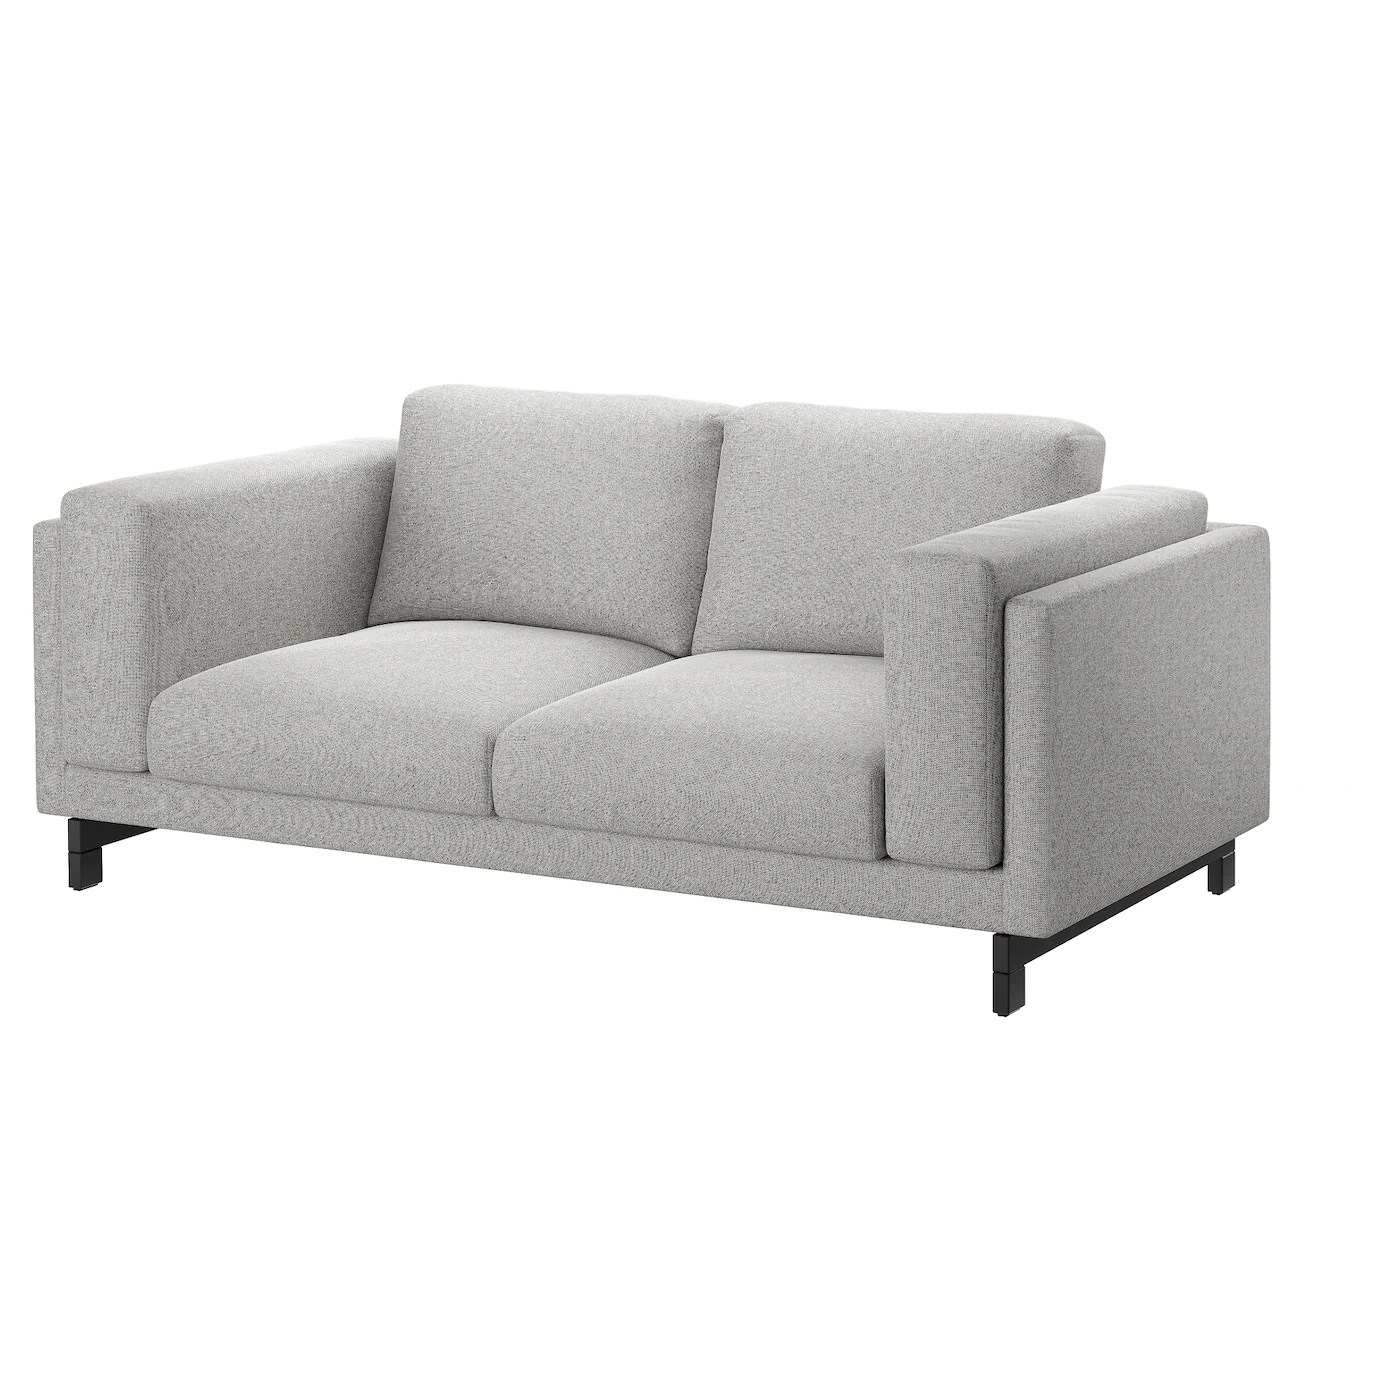 Ikea Sofa Nockeby Test Nockeby Two Seat Sofa Tallmyra White Black Wood Ikea